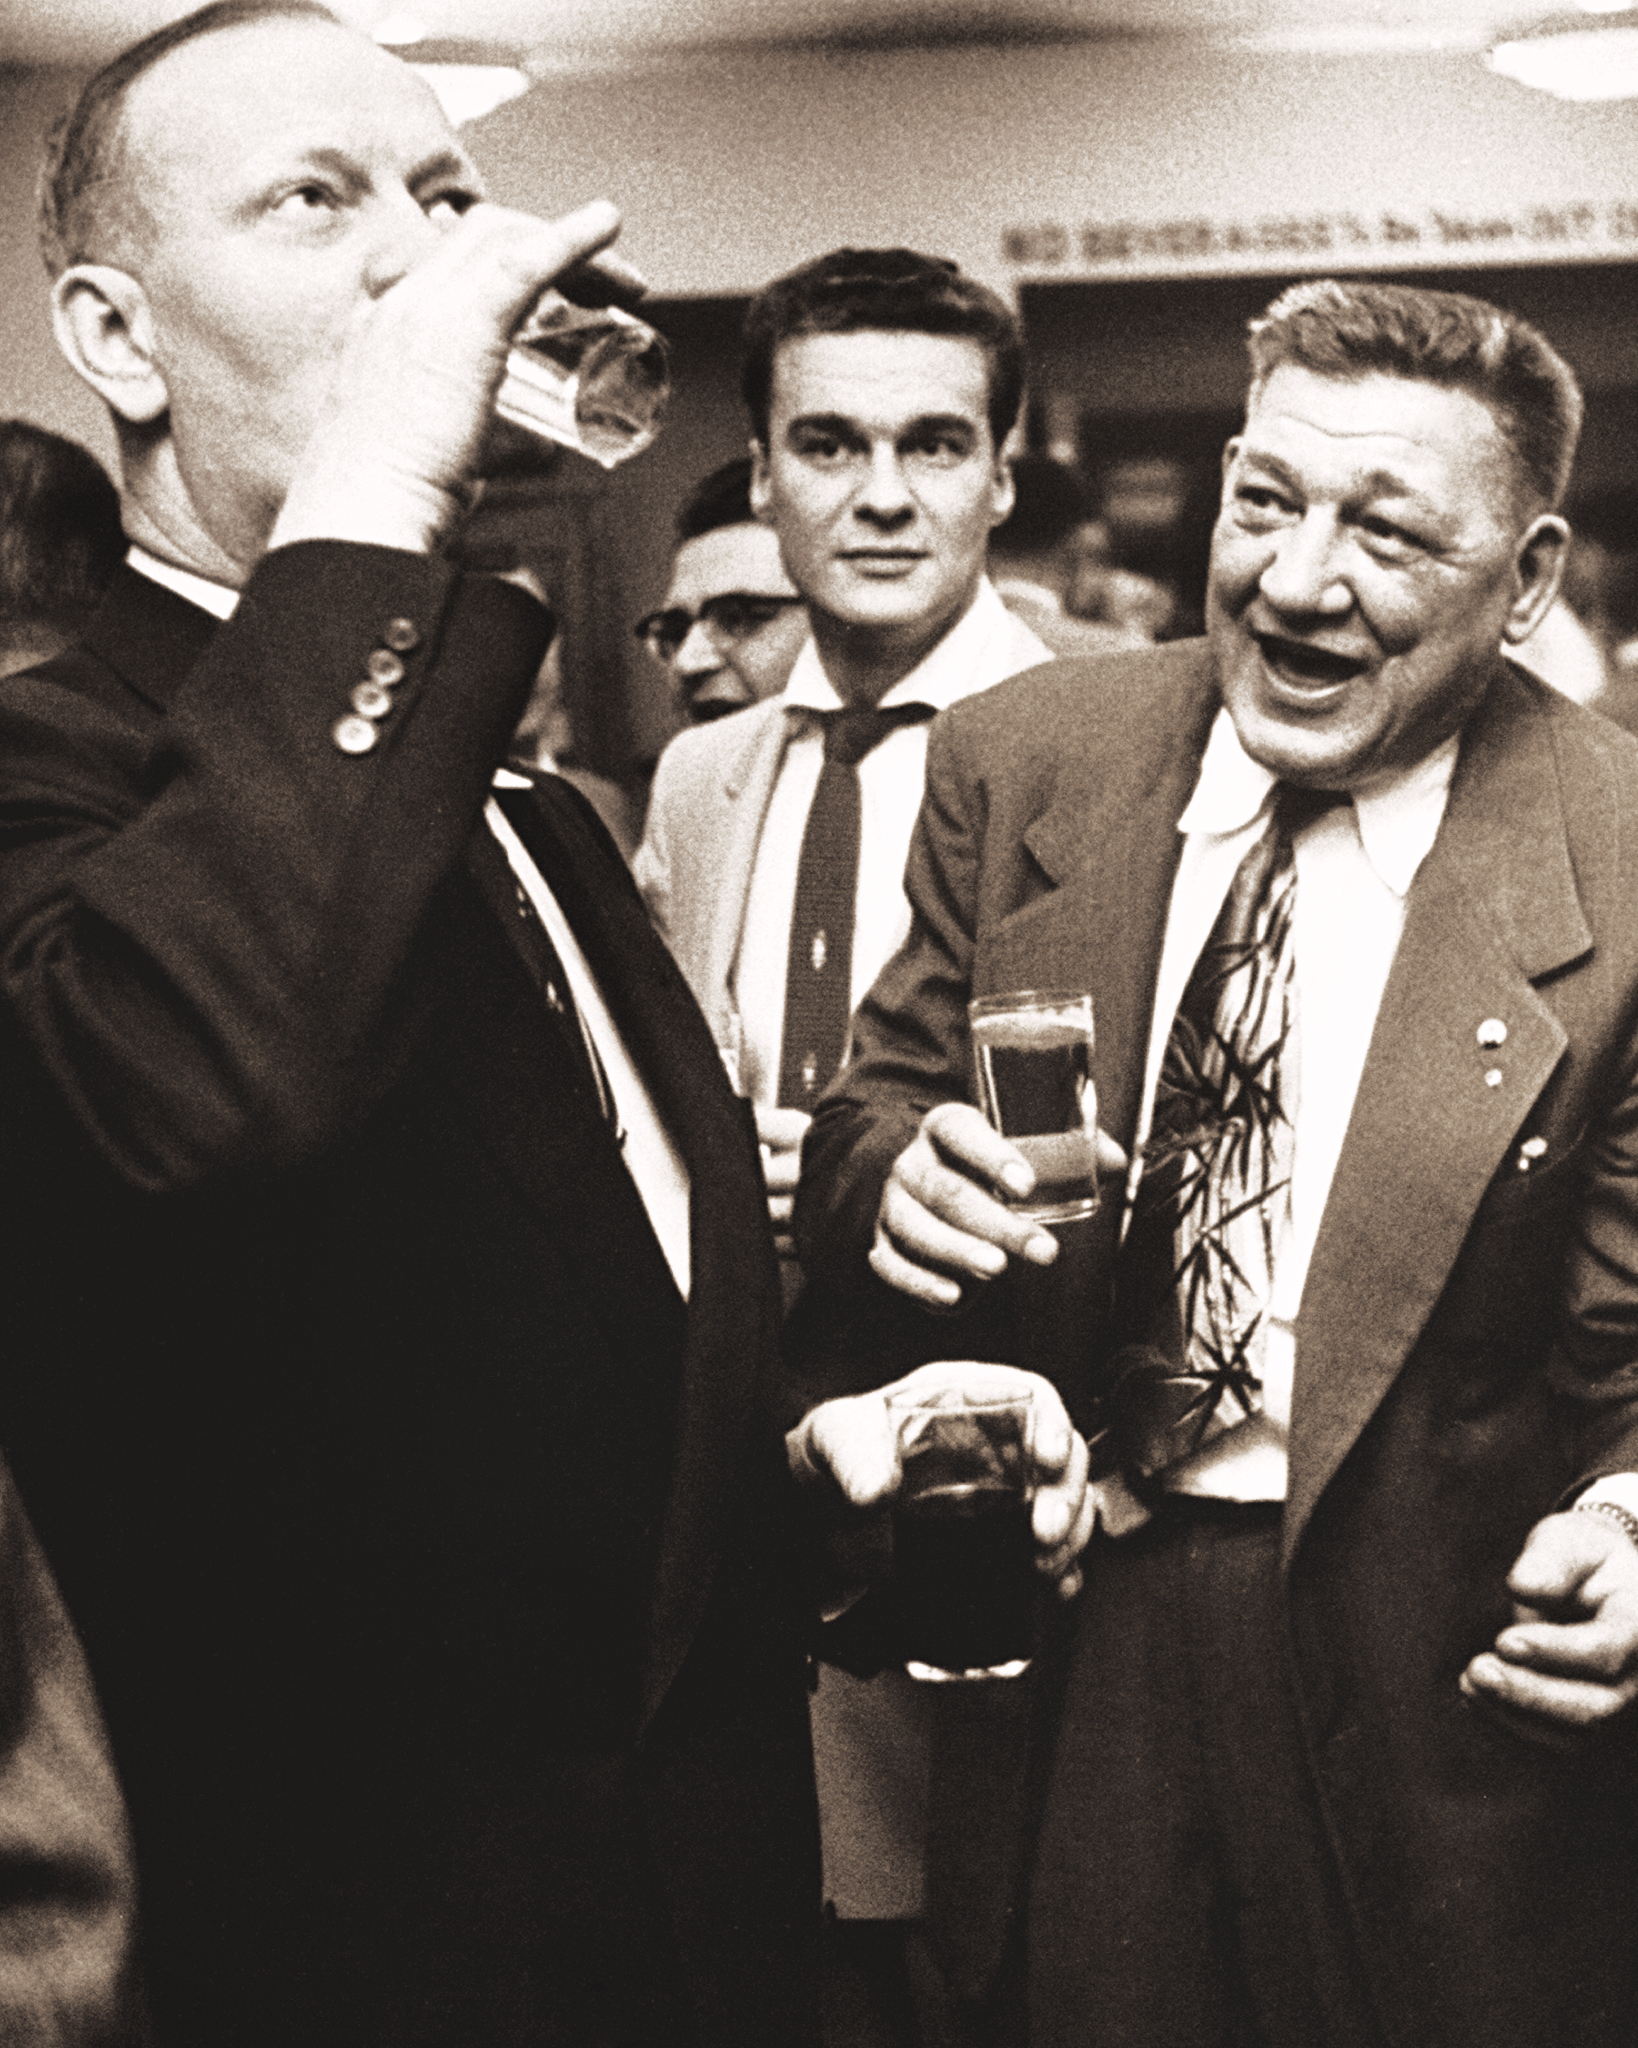 men-drinking-reception-vintage-getty-tlp971830-10-bw-mwds11105.jpg